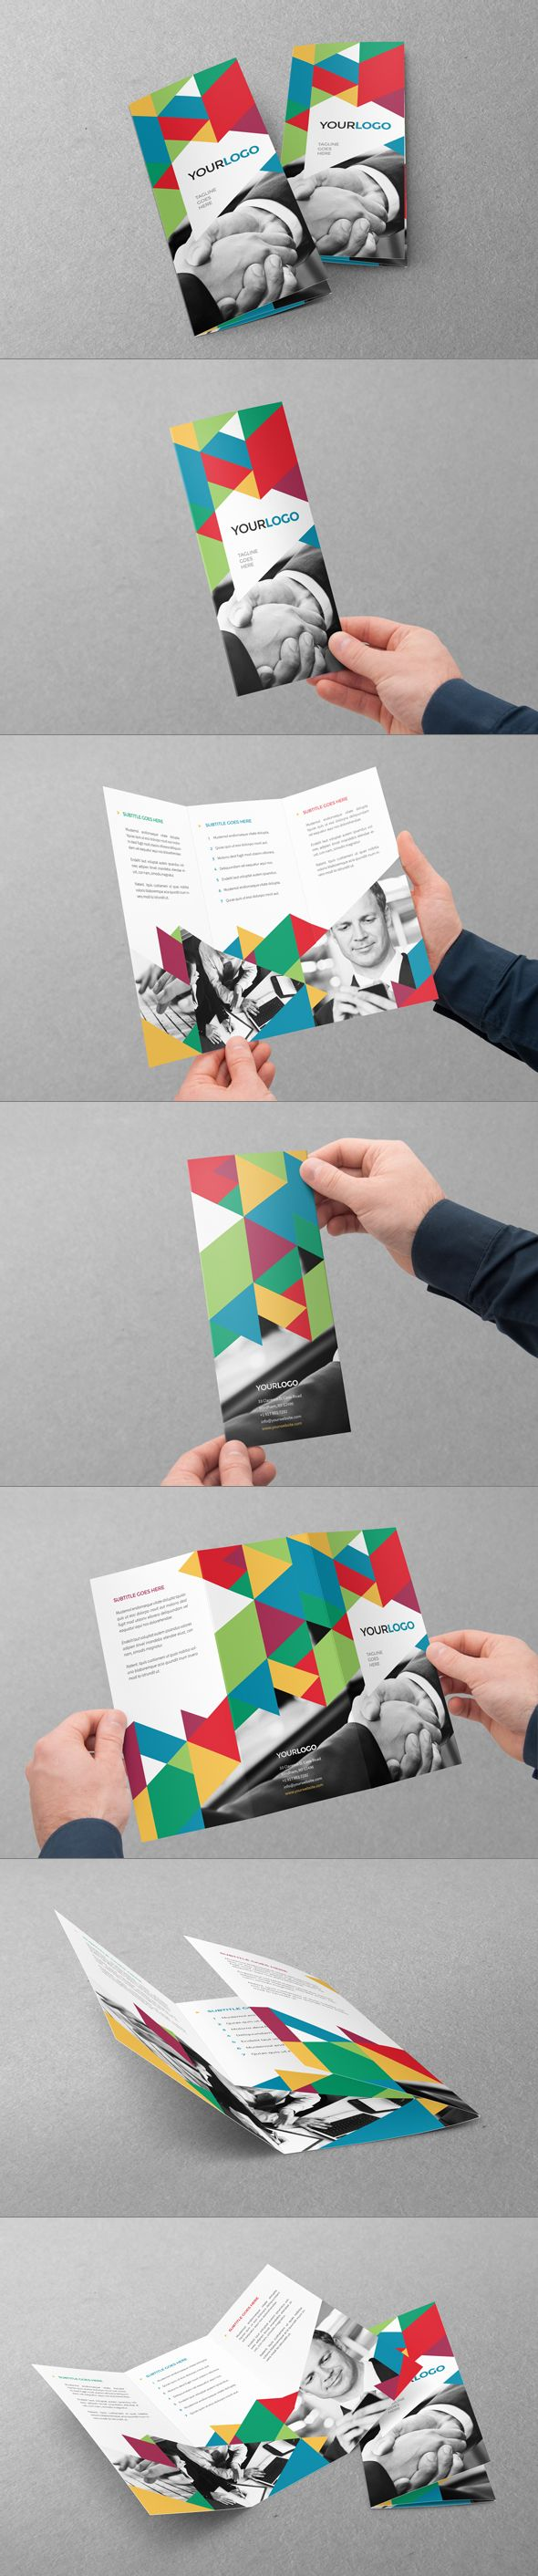 Colorful Business Trifold. Download here: http://graphicriver.net/item/colorful-business-trifold/7687440?ref=abradesign #design #brochure #trifold